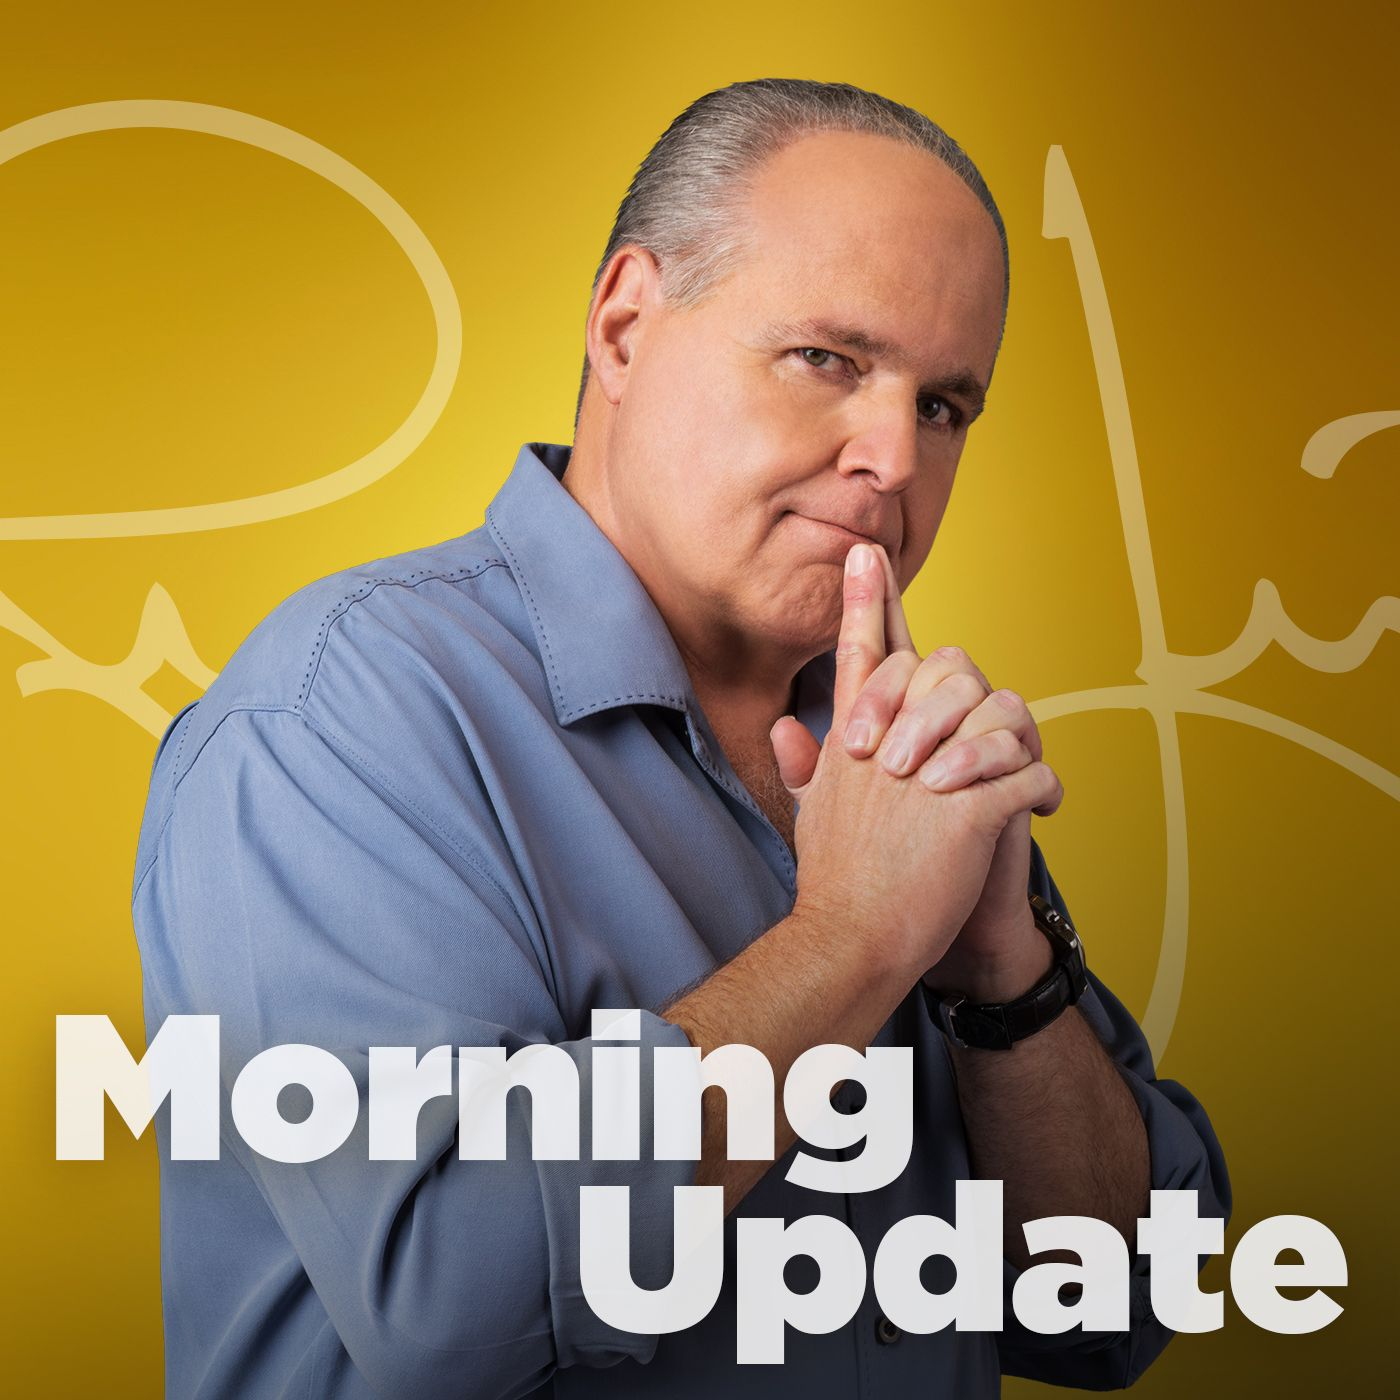 Rush Limbaugh Jun 23, 2020